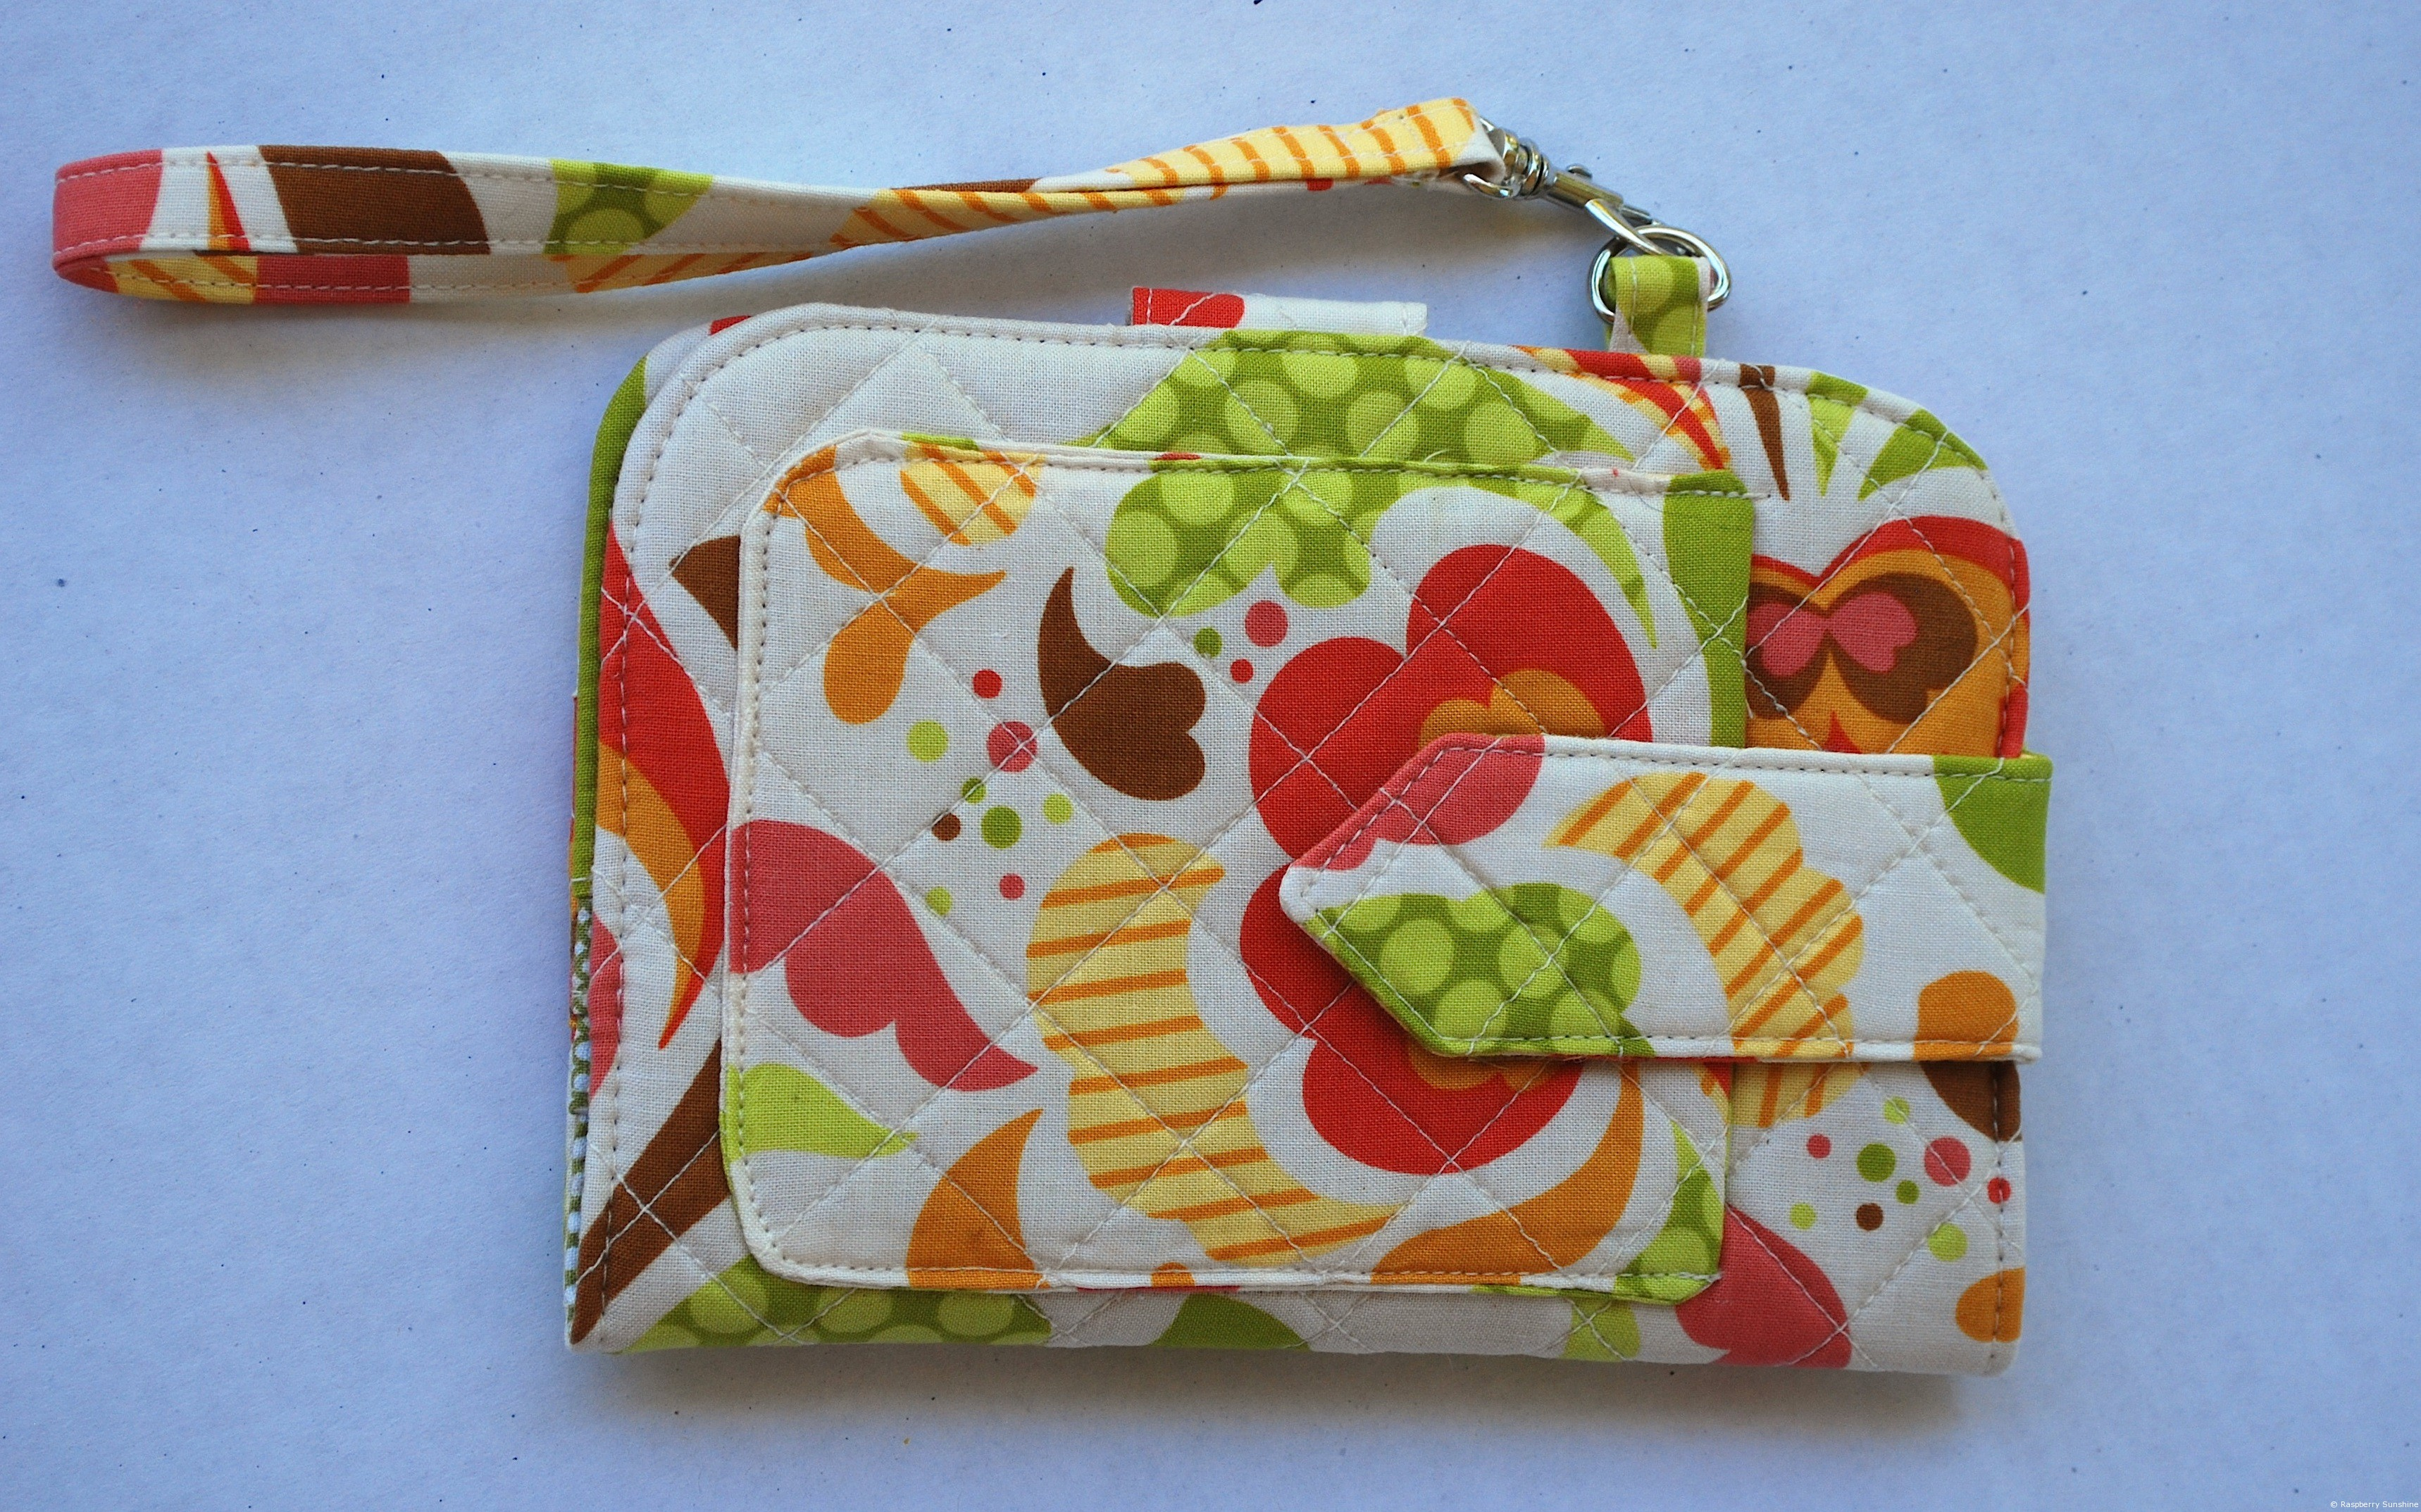 Introducing greenbacks wallet trio by sew sweetness raspberry if youre looking for a new challenge or need a new wallet give this pattern a try you wont be disappointed i am getting ready to get more of this jeuxipadfo Image collections